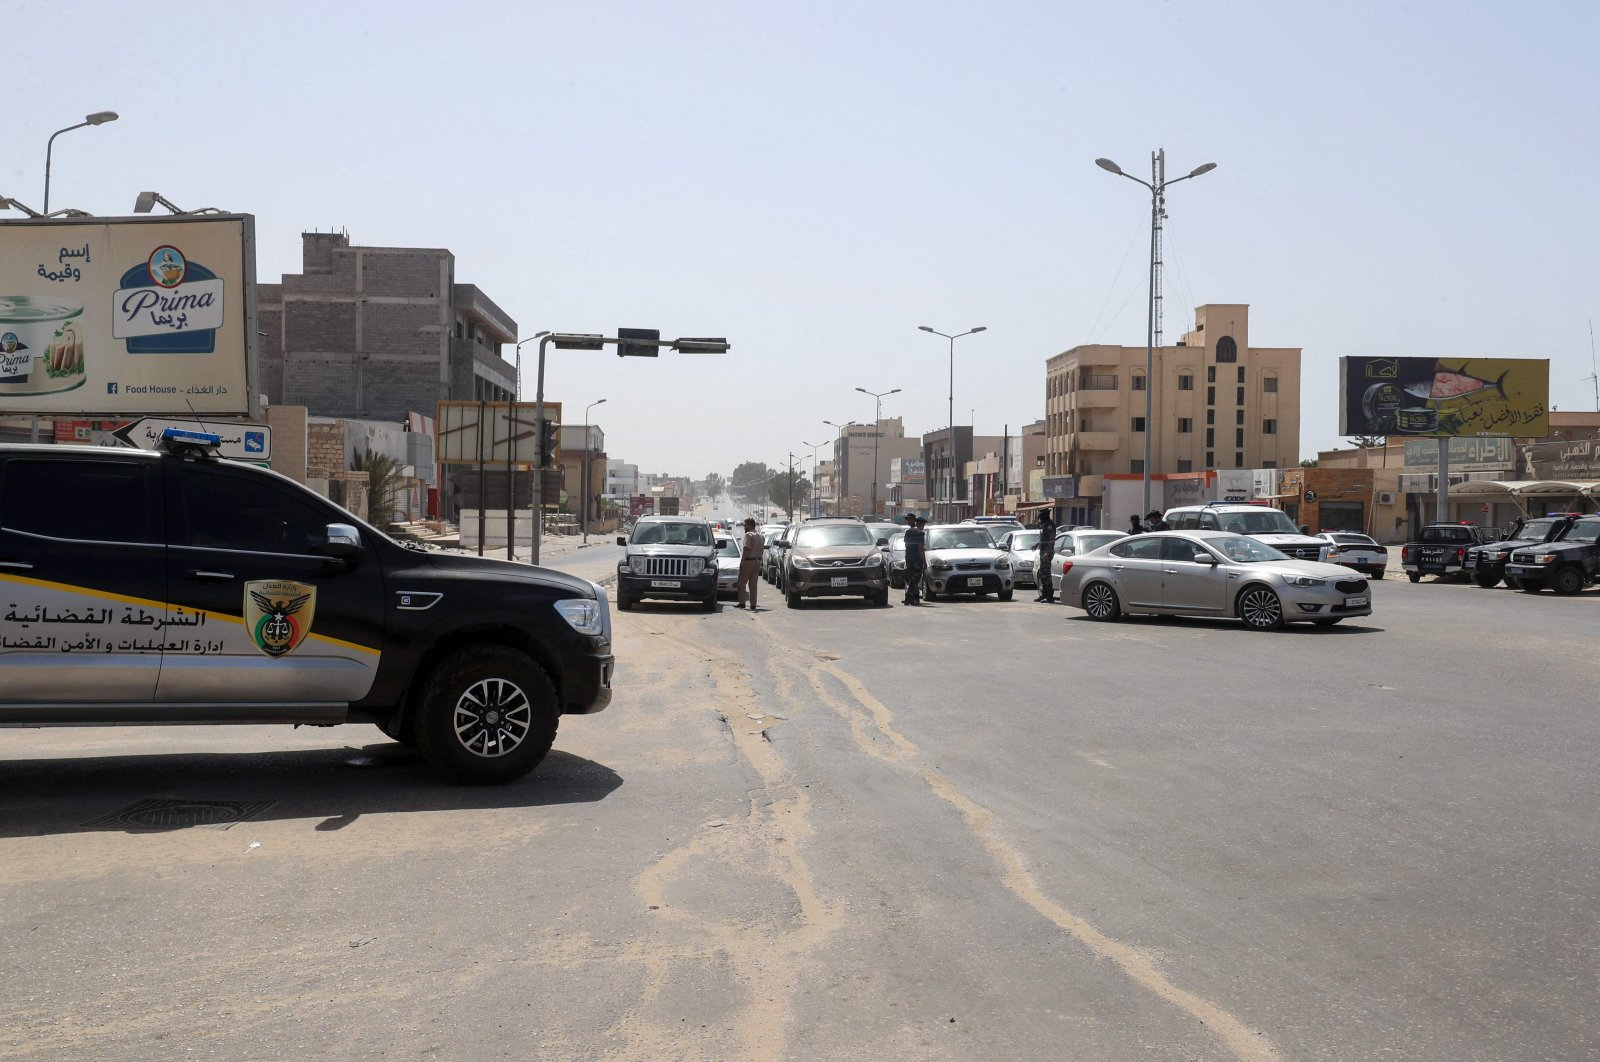 Libyan security officers man a check point to verify the implementation of a total curfew the authorities announced a day earlier, to mitigate the spread of the COVID-19 pandemic, in the capital Tripoli, Libya, on Aug. 7, 2021. (AFP Photo)